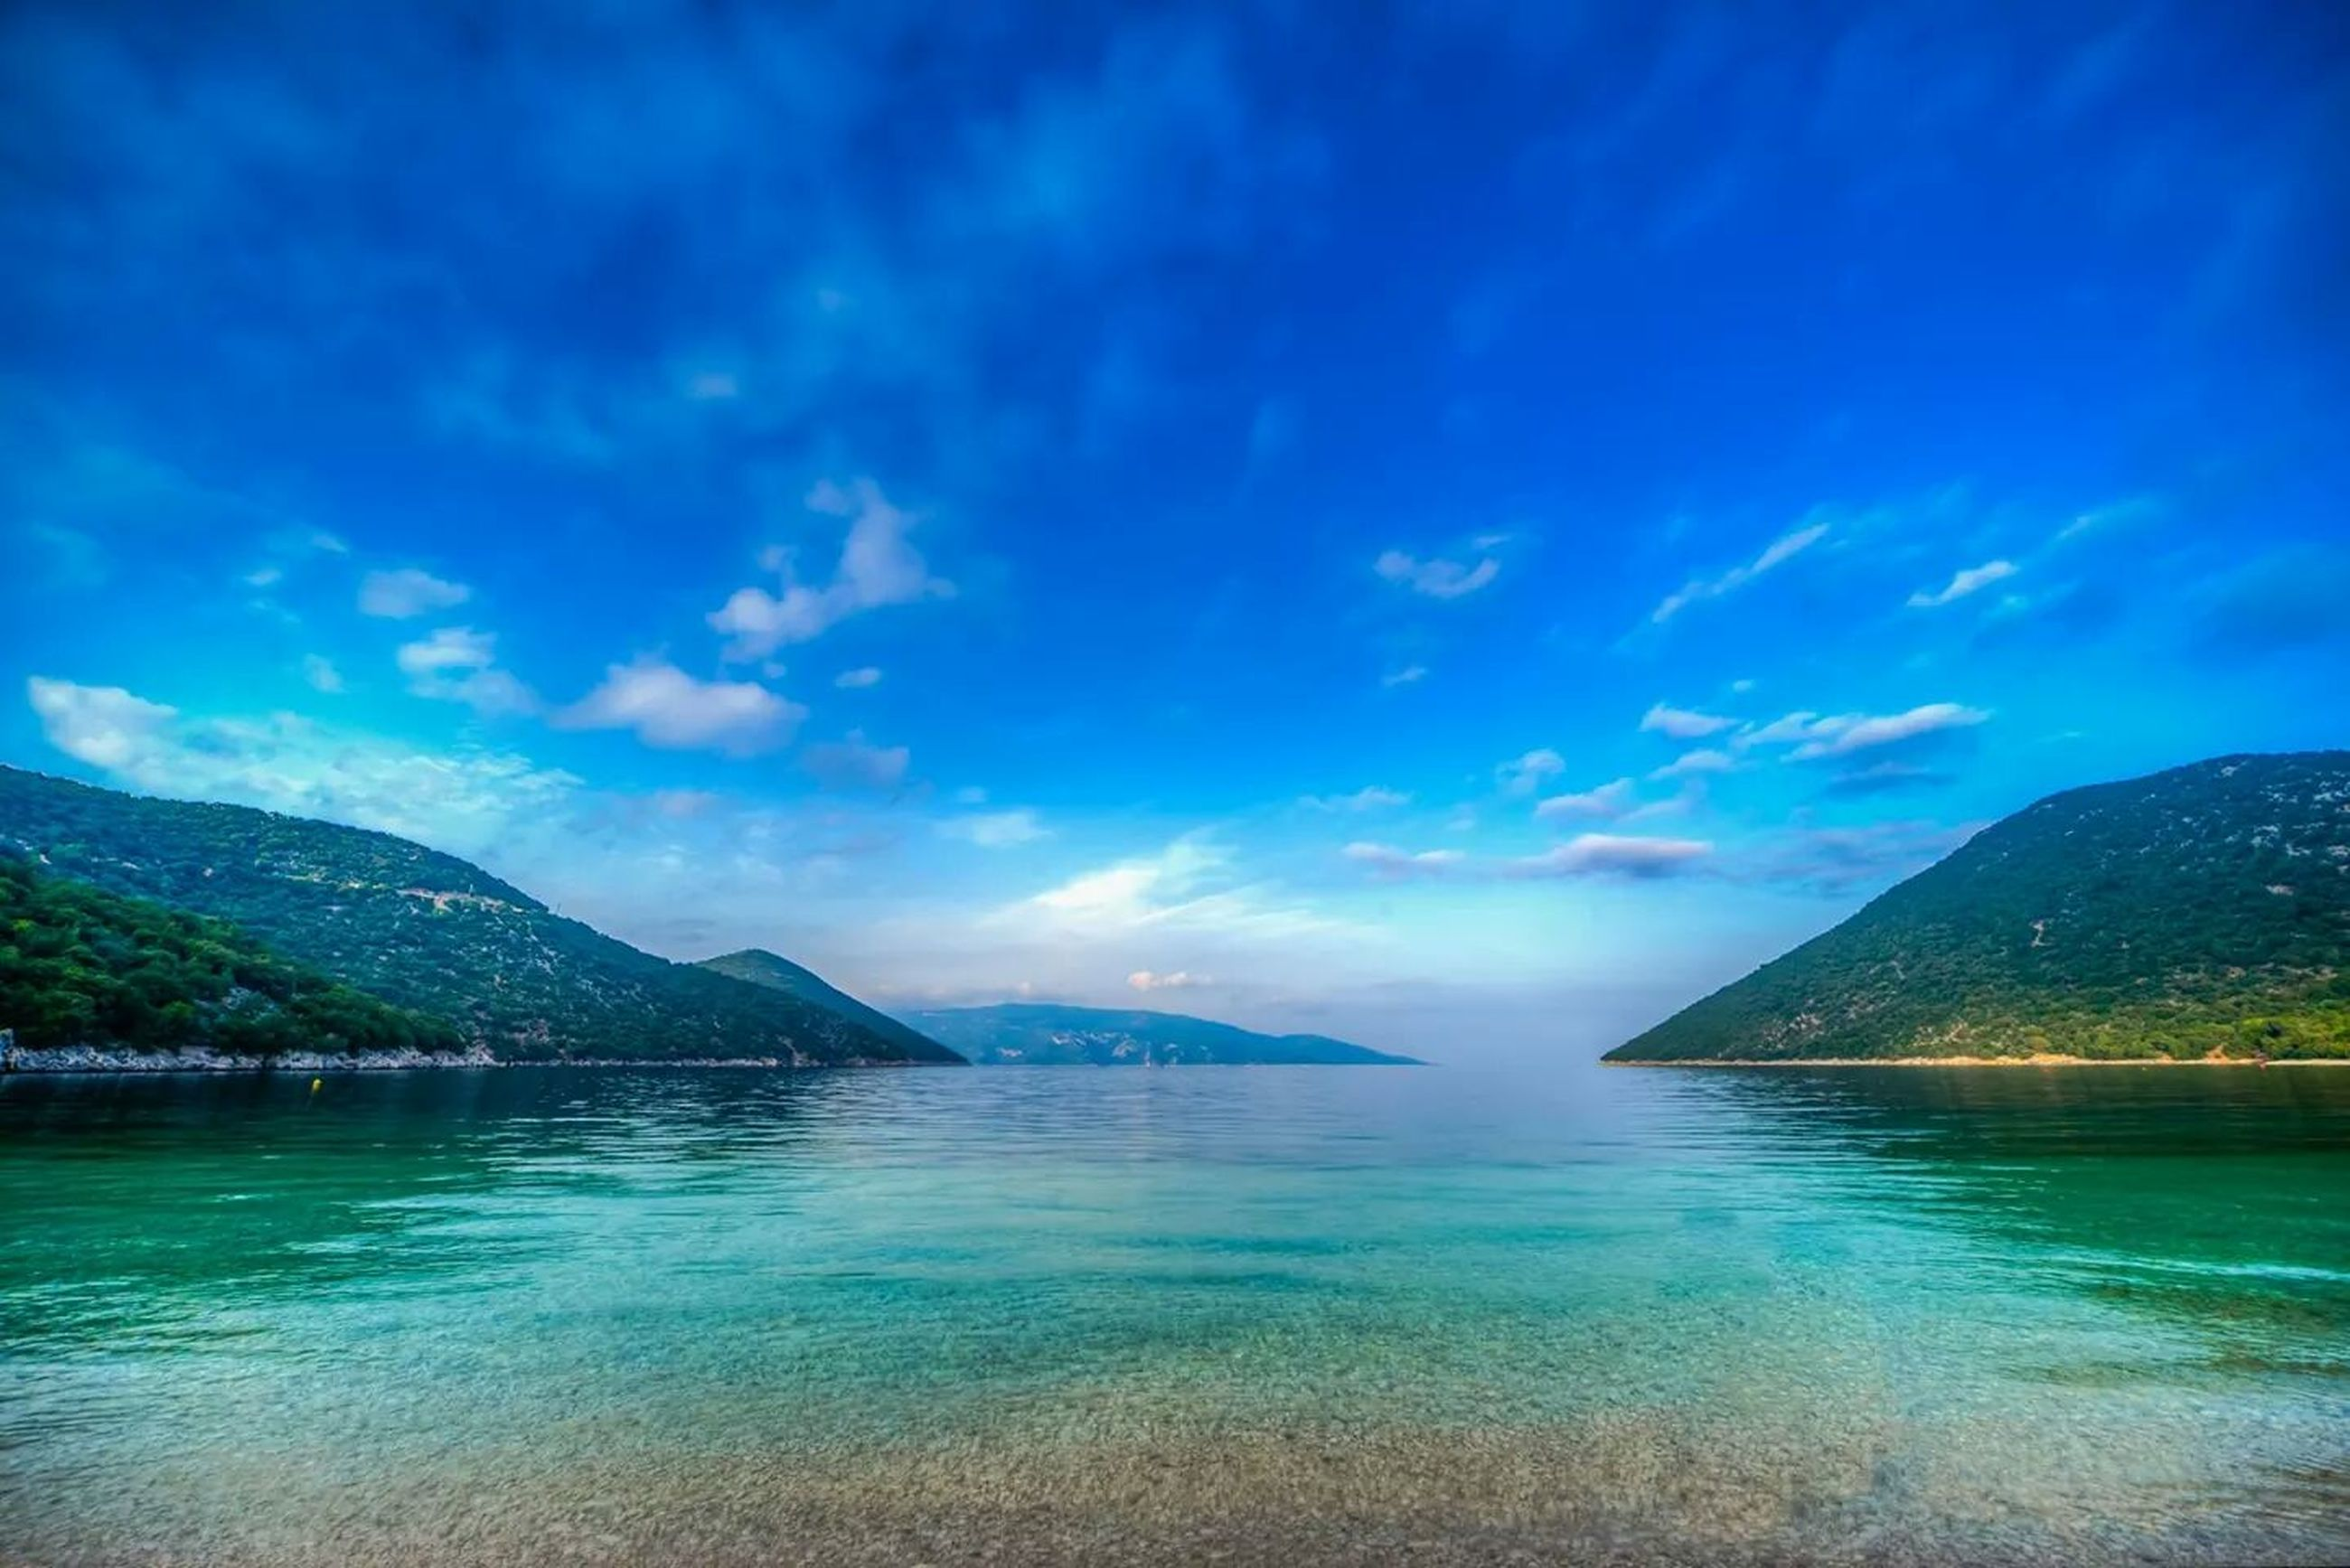 water, tranquil scene, scenics, mountain, tranquility, blue, beauty in nature, sky, sea, nature, mountain range, lake, waterfront, idyllic, cloud - sky, cloud, calm, reflection, non-urban scene, outdoors